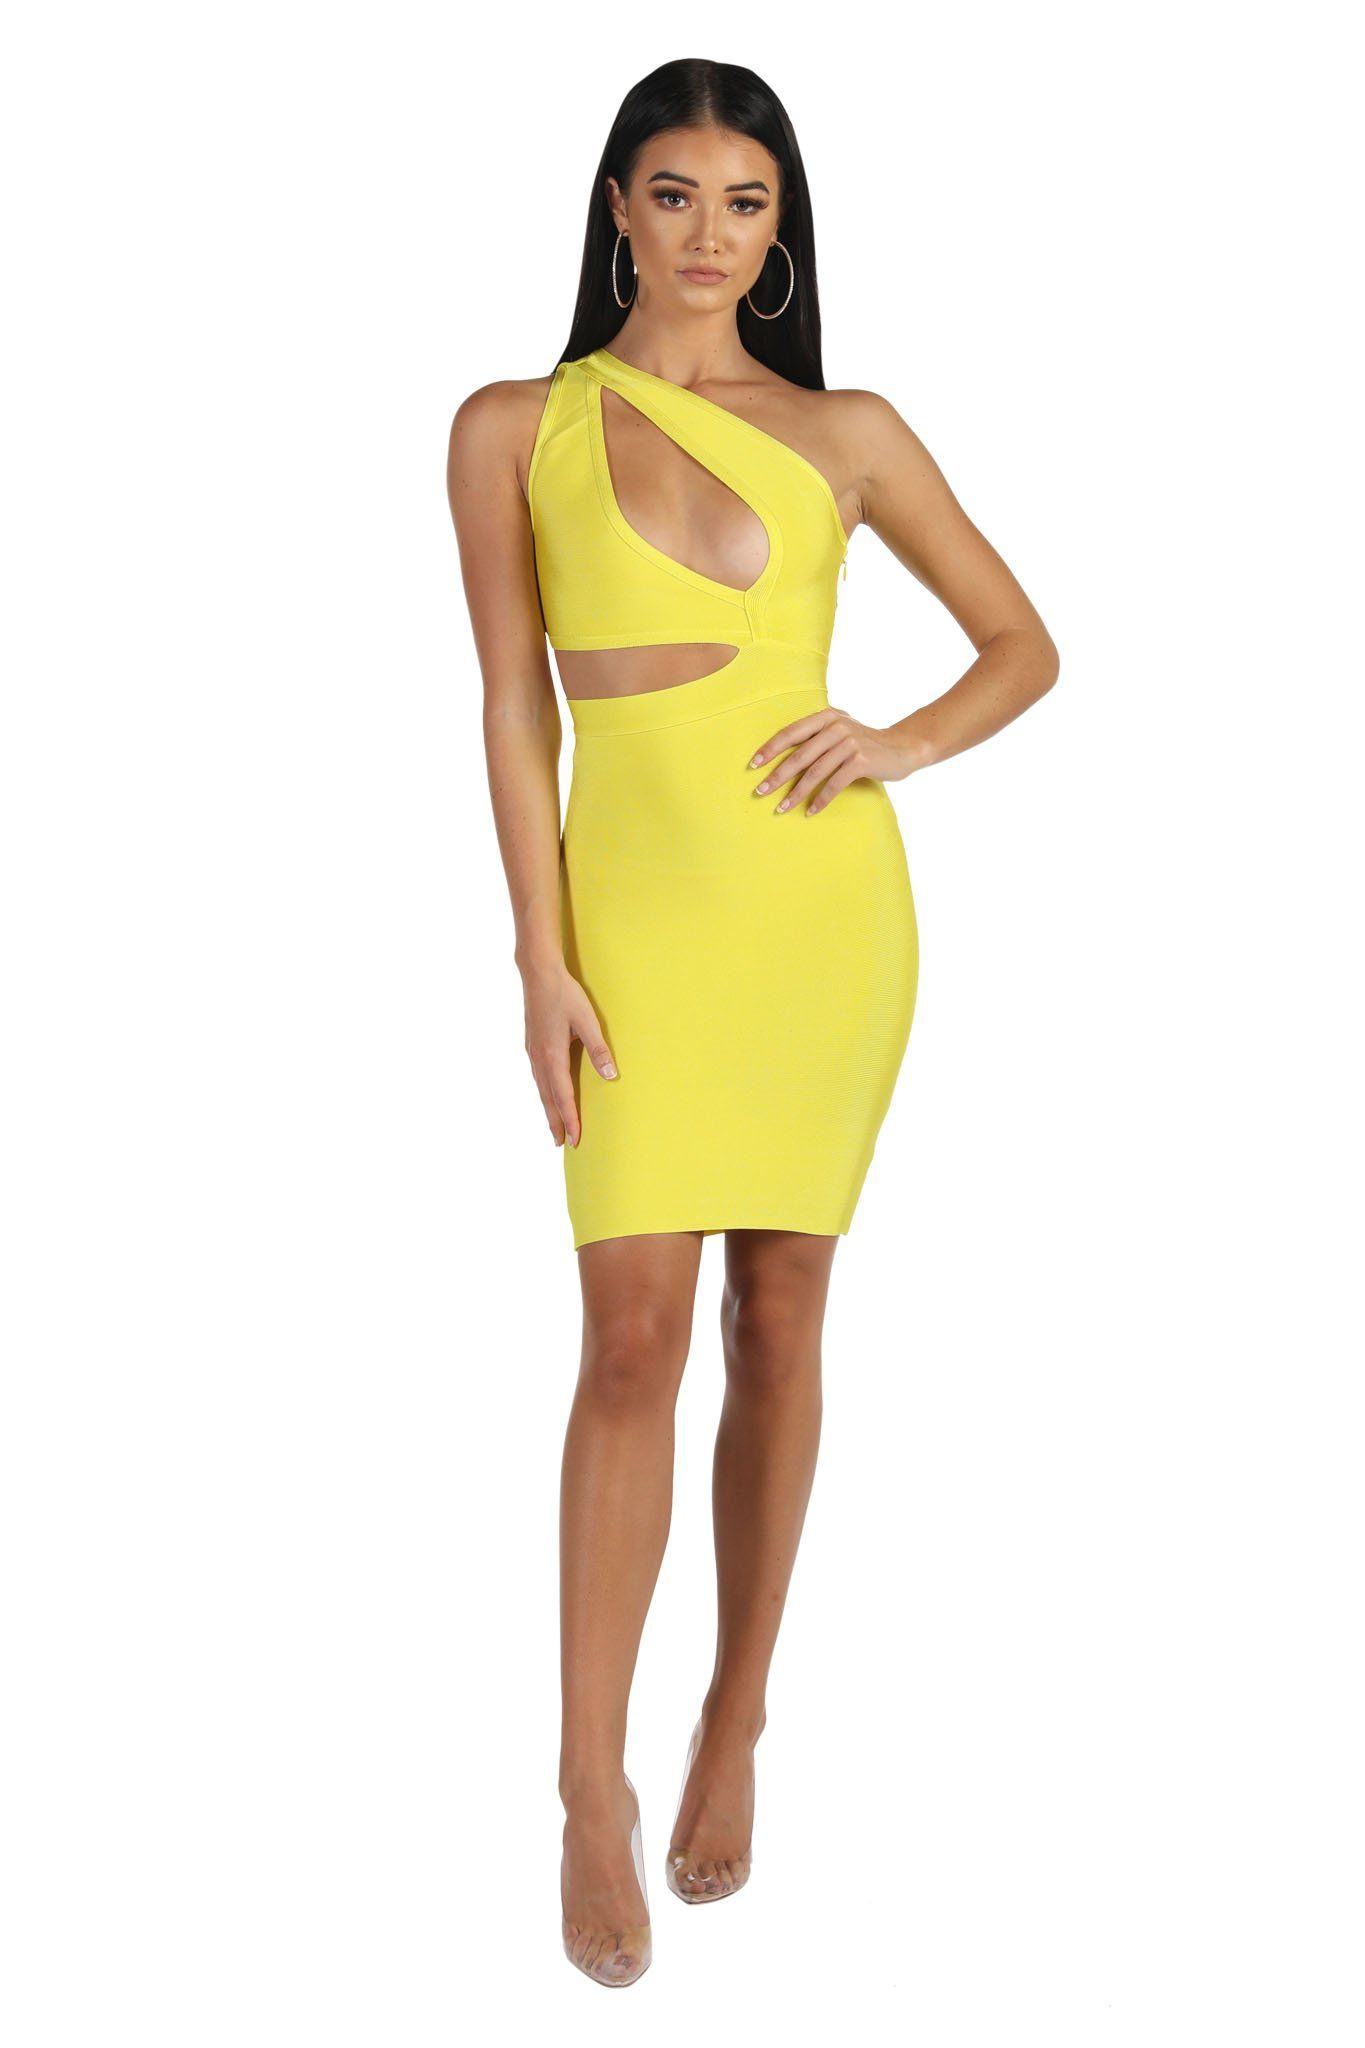 Yellow Sleeveless Above-Knee Length Bandage Dress with Asymmetric One Shoulder Neckline and Cutouts